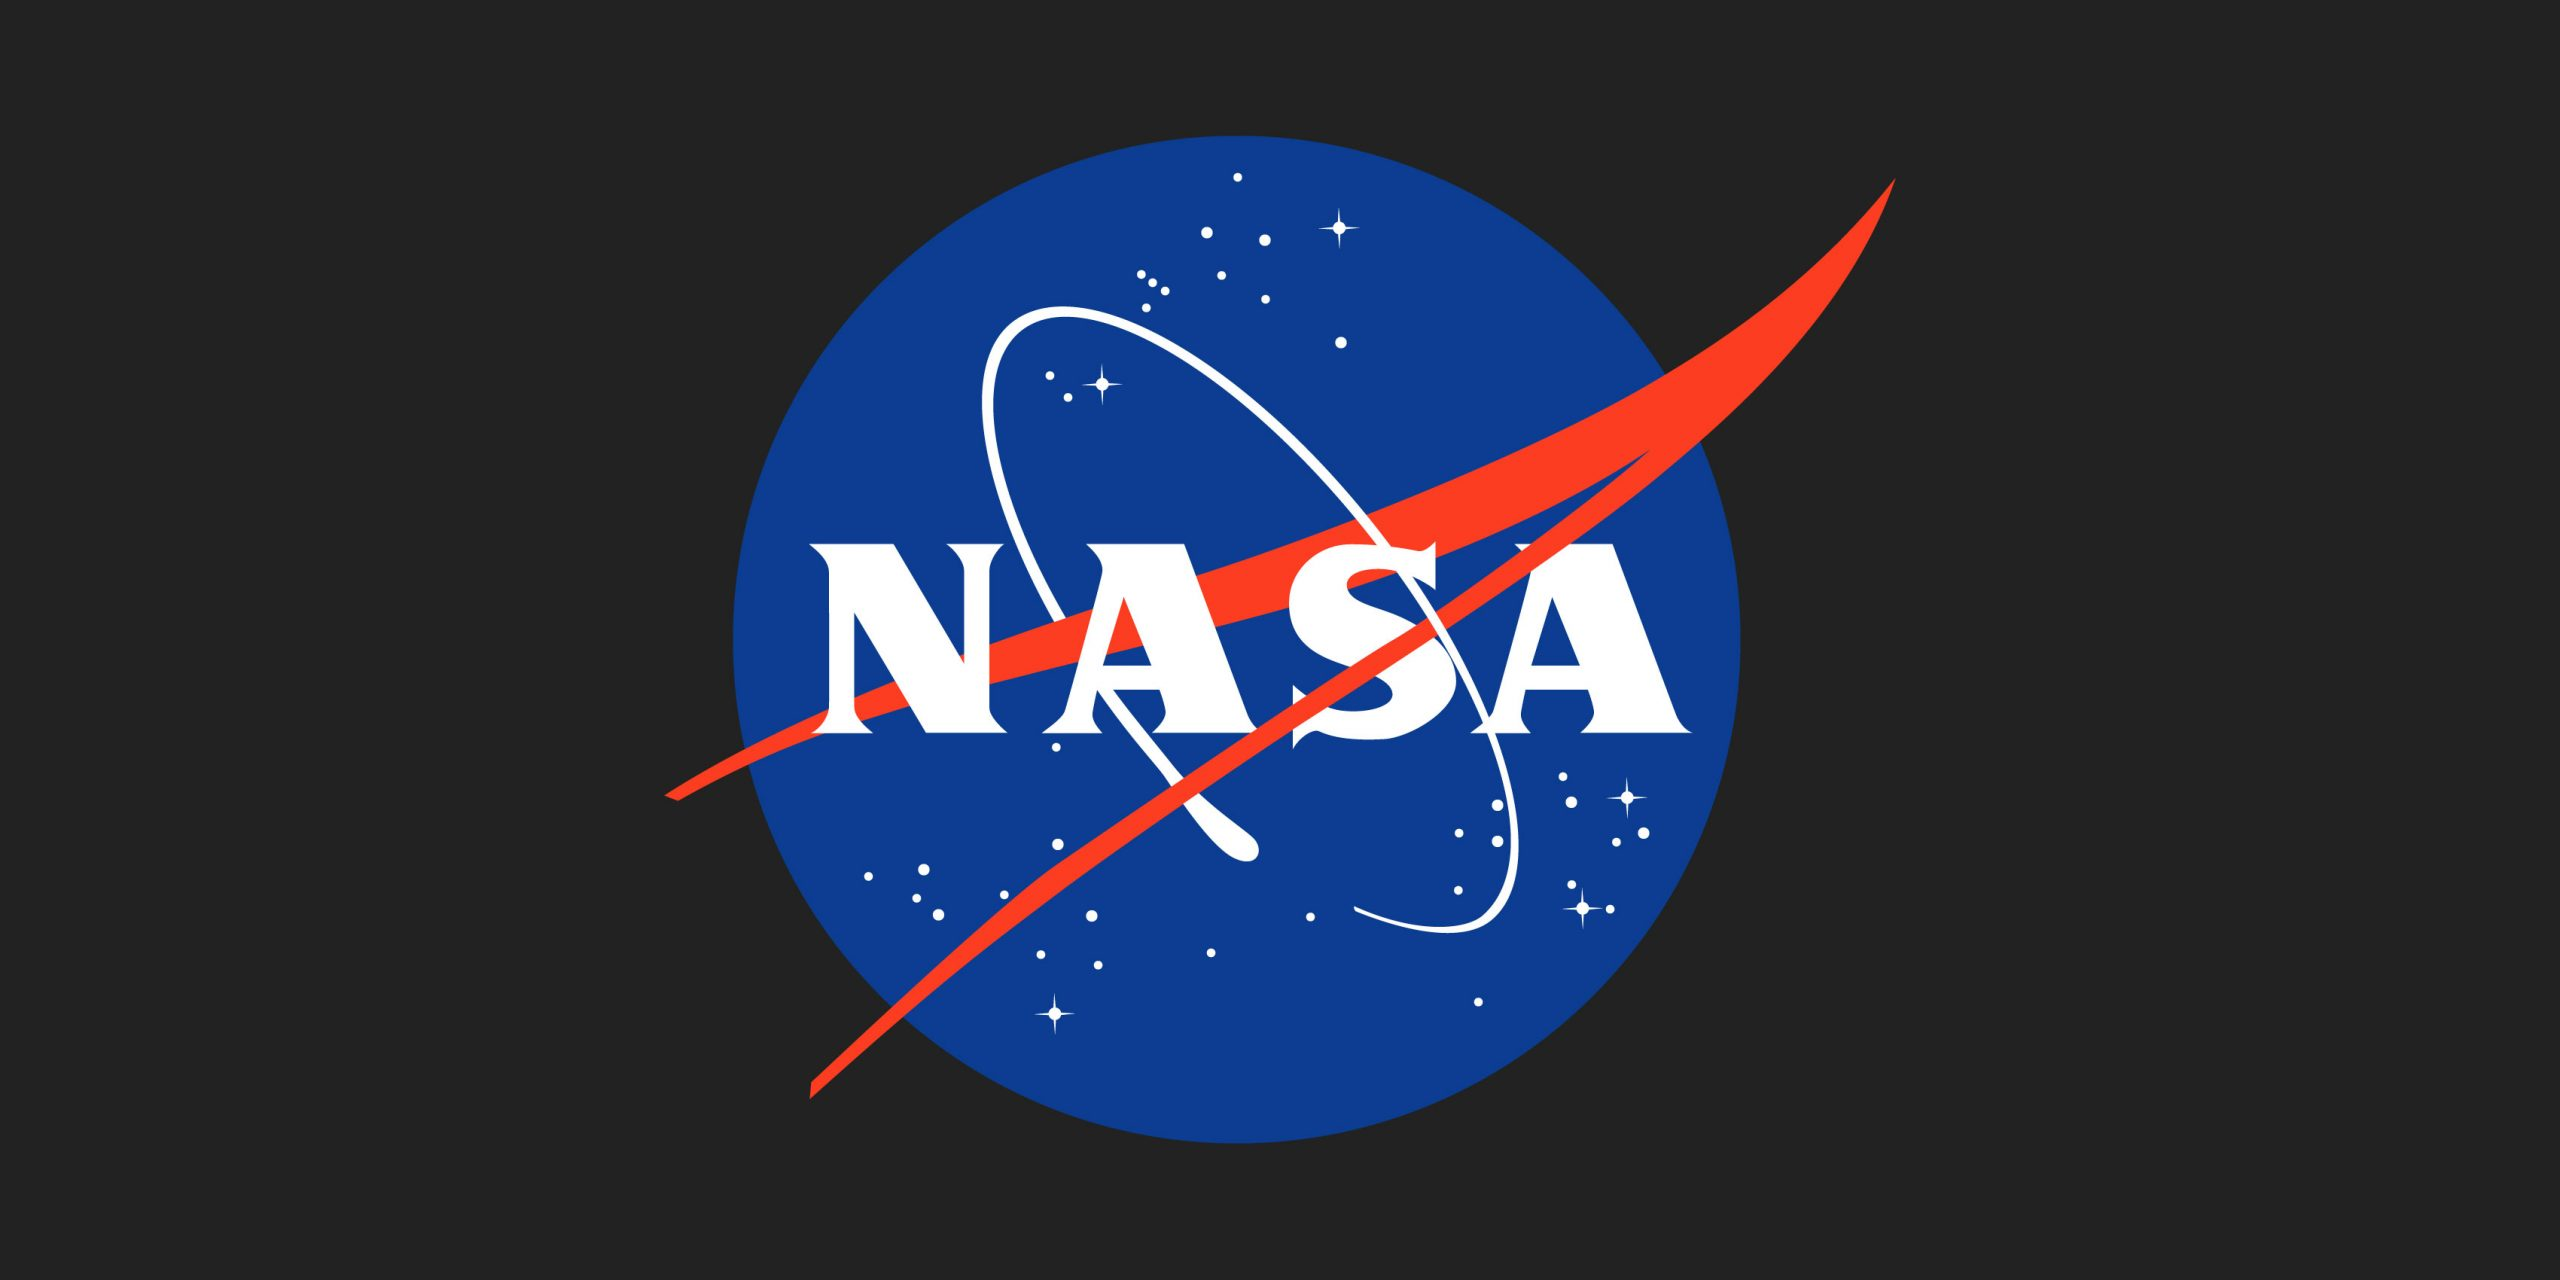 NASA Announces 45 Million for Small Business Entrepreneurs